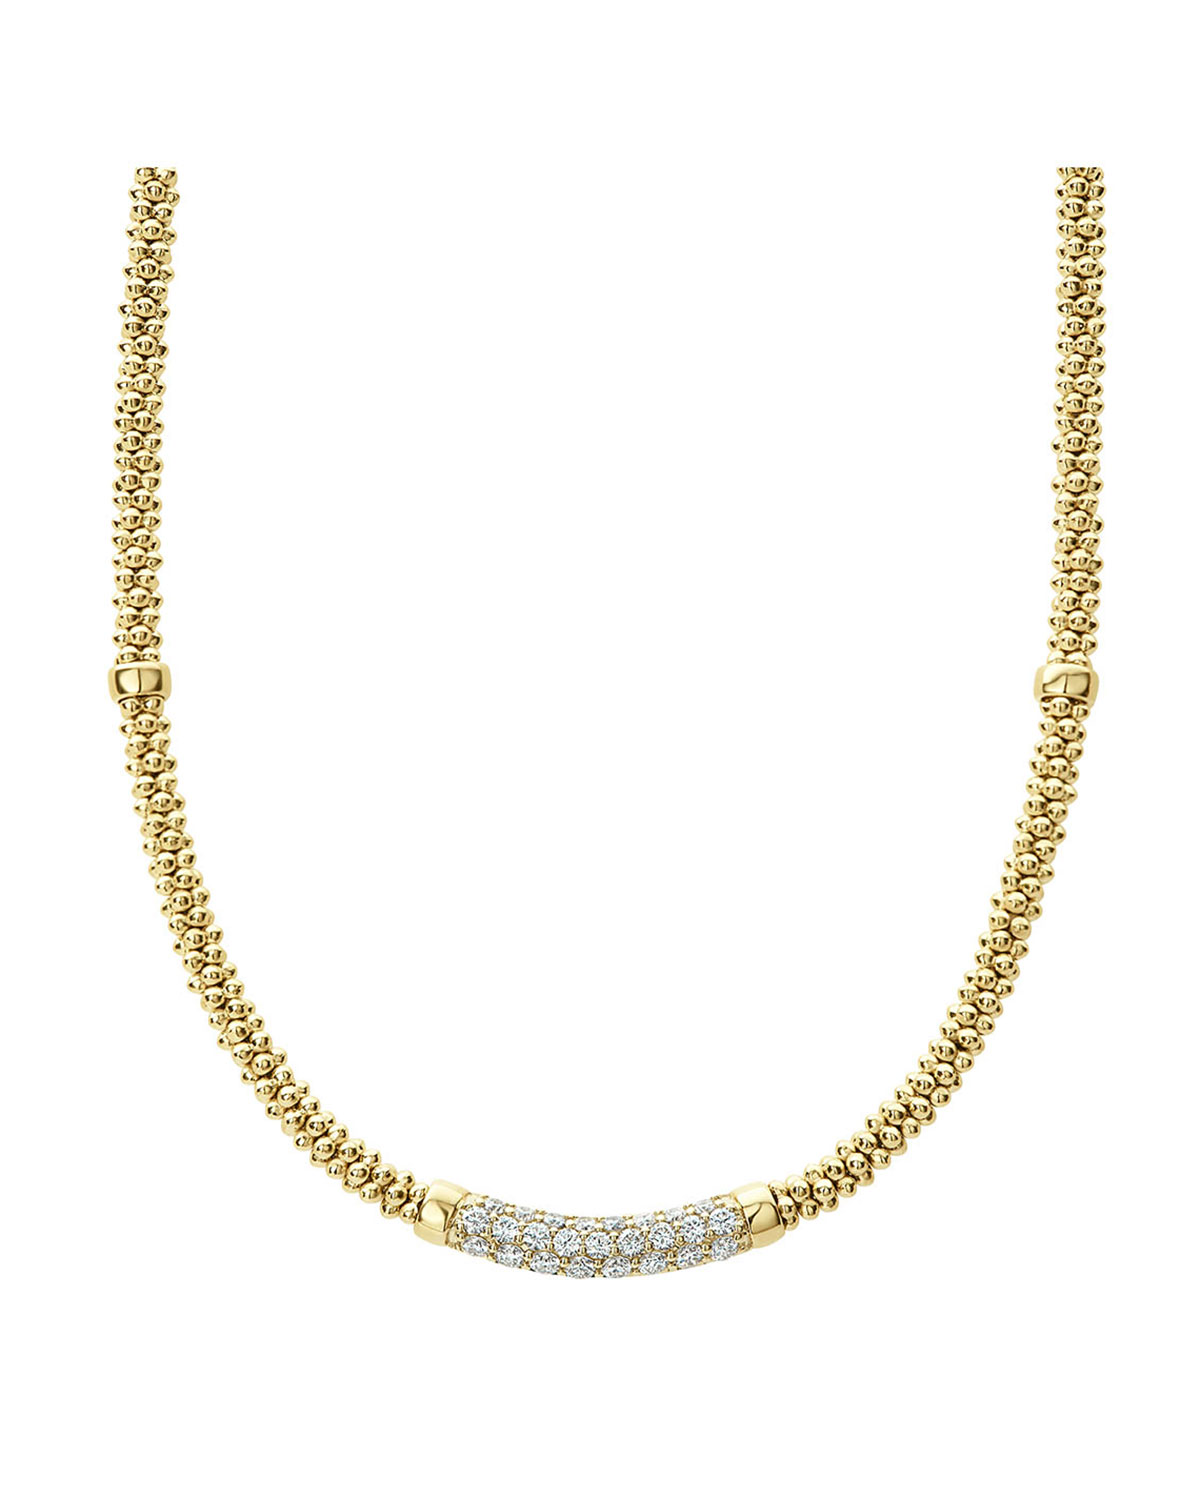 Lagos 18K CAVIAR GOLD ROPE NECKLACE W/ DIAMONDS, 18""